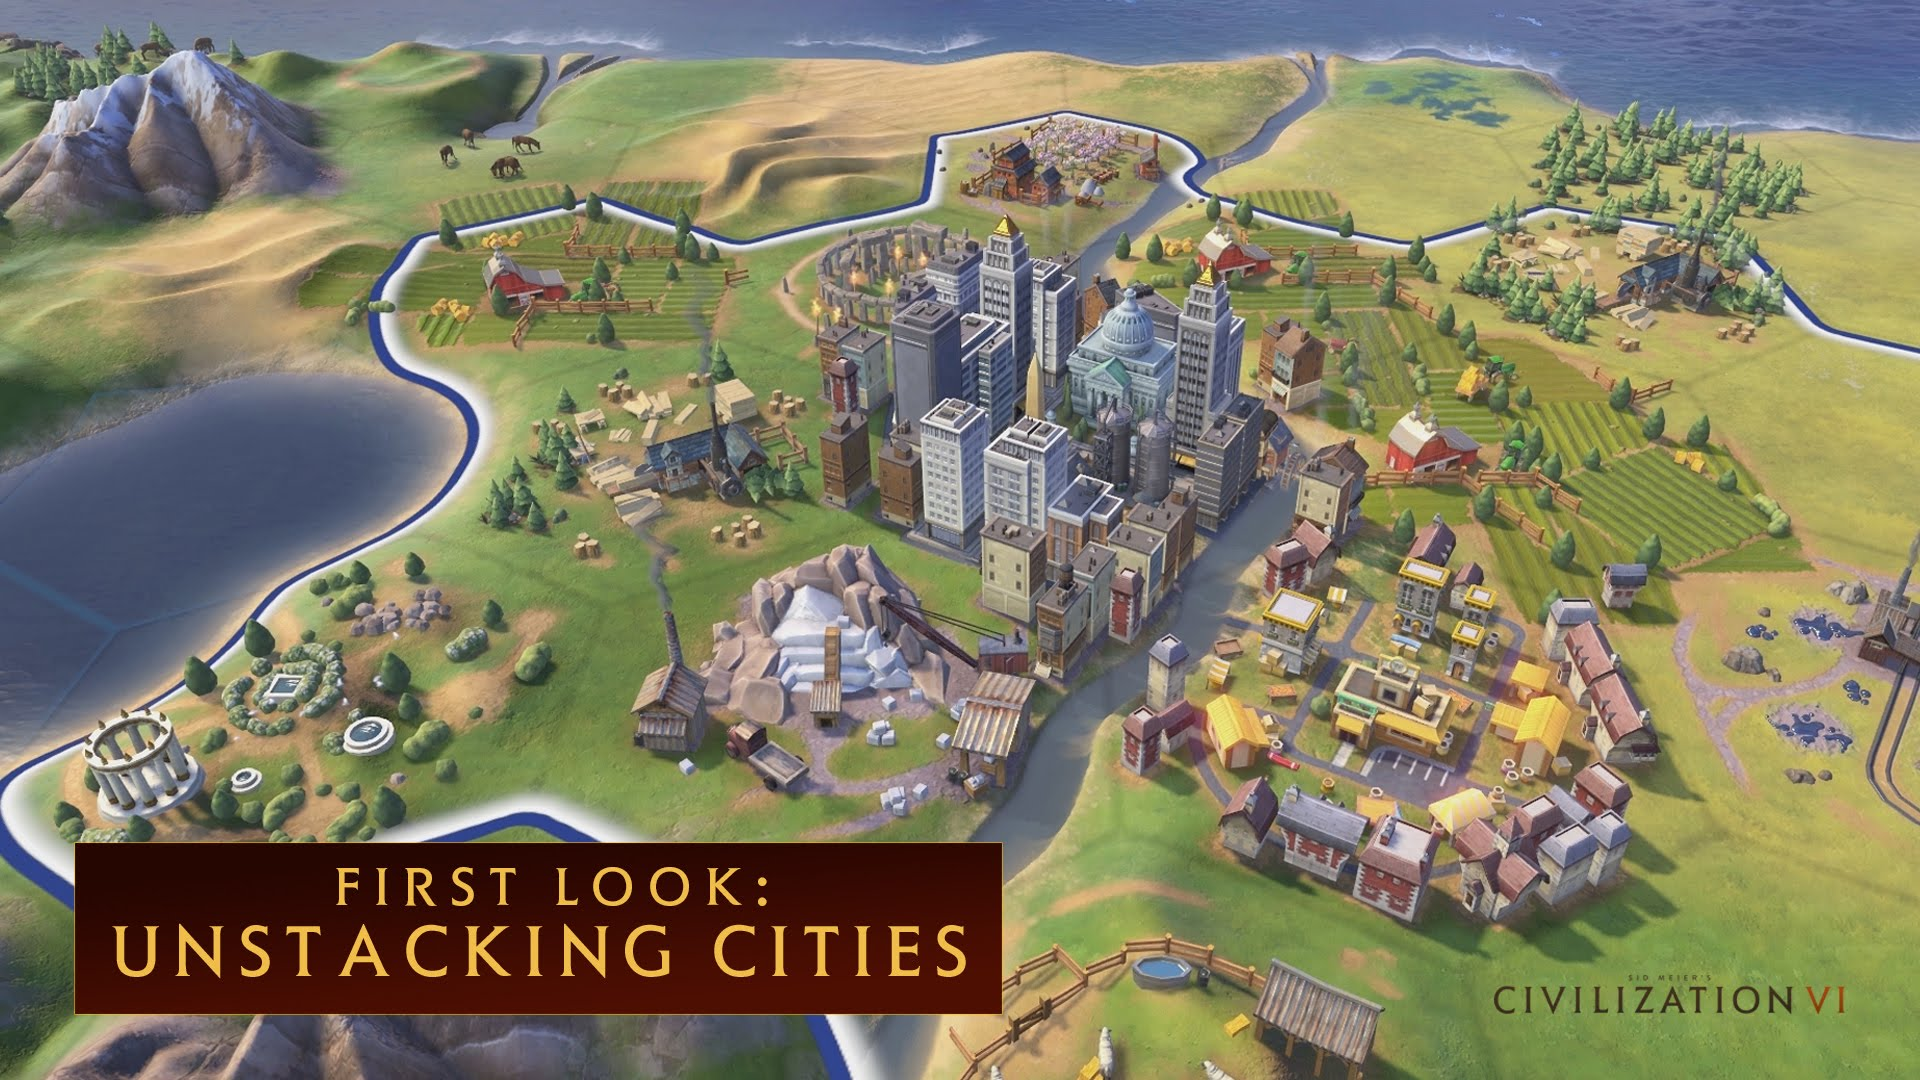 CIVILIZATION VI - First Look: Unstacking Cities - International Version